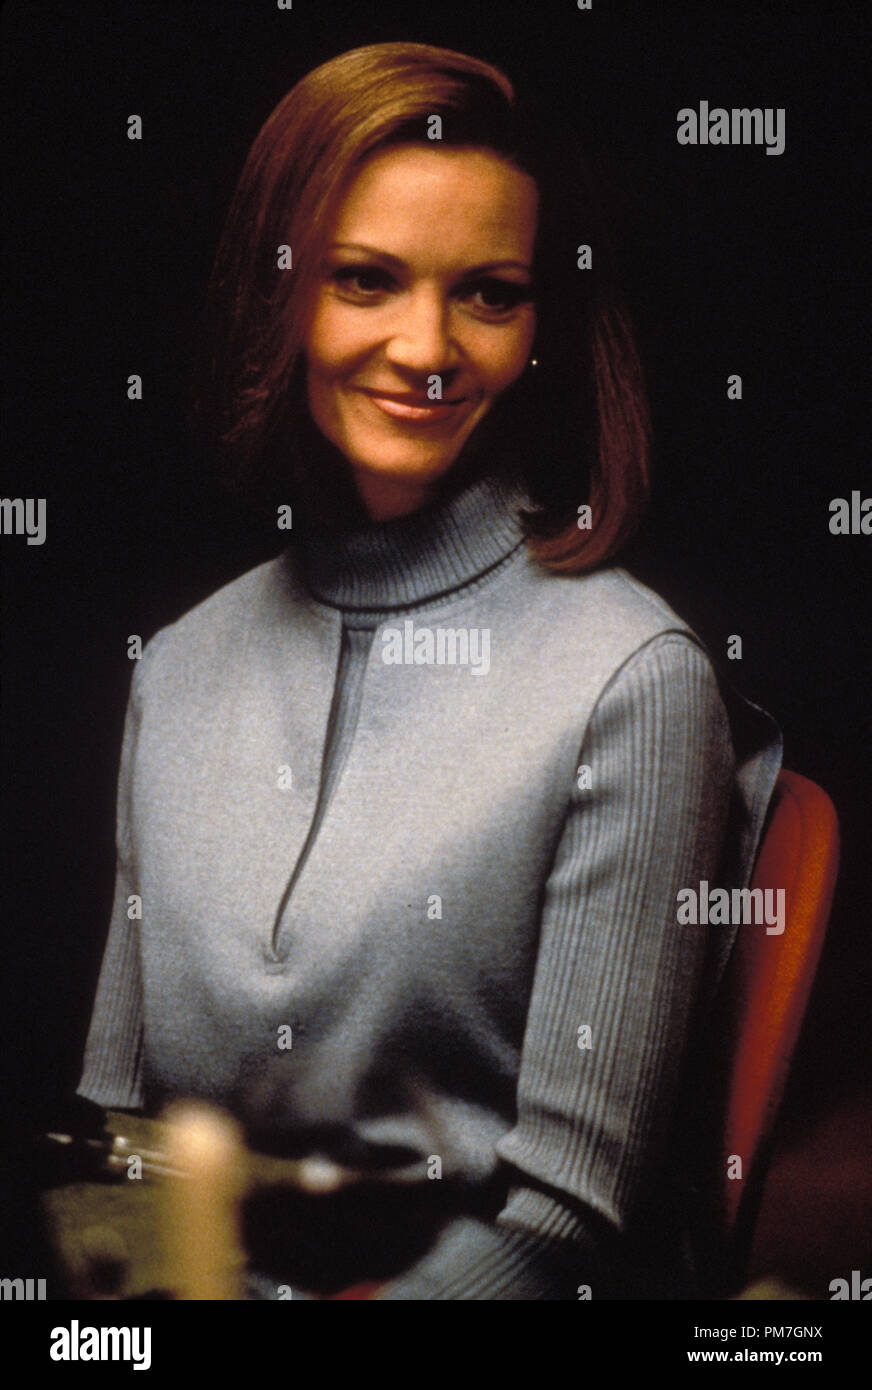 Film Still From The Ice Storm Joan Allen 1997 Fox Searchlight Photo Credit Barry Wetcher File Reference 31013074tha For Editorial Use Only All